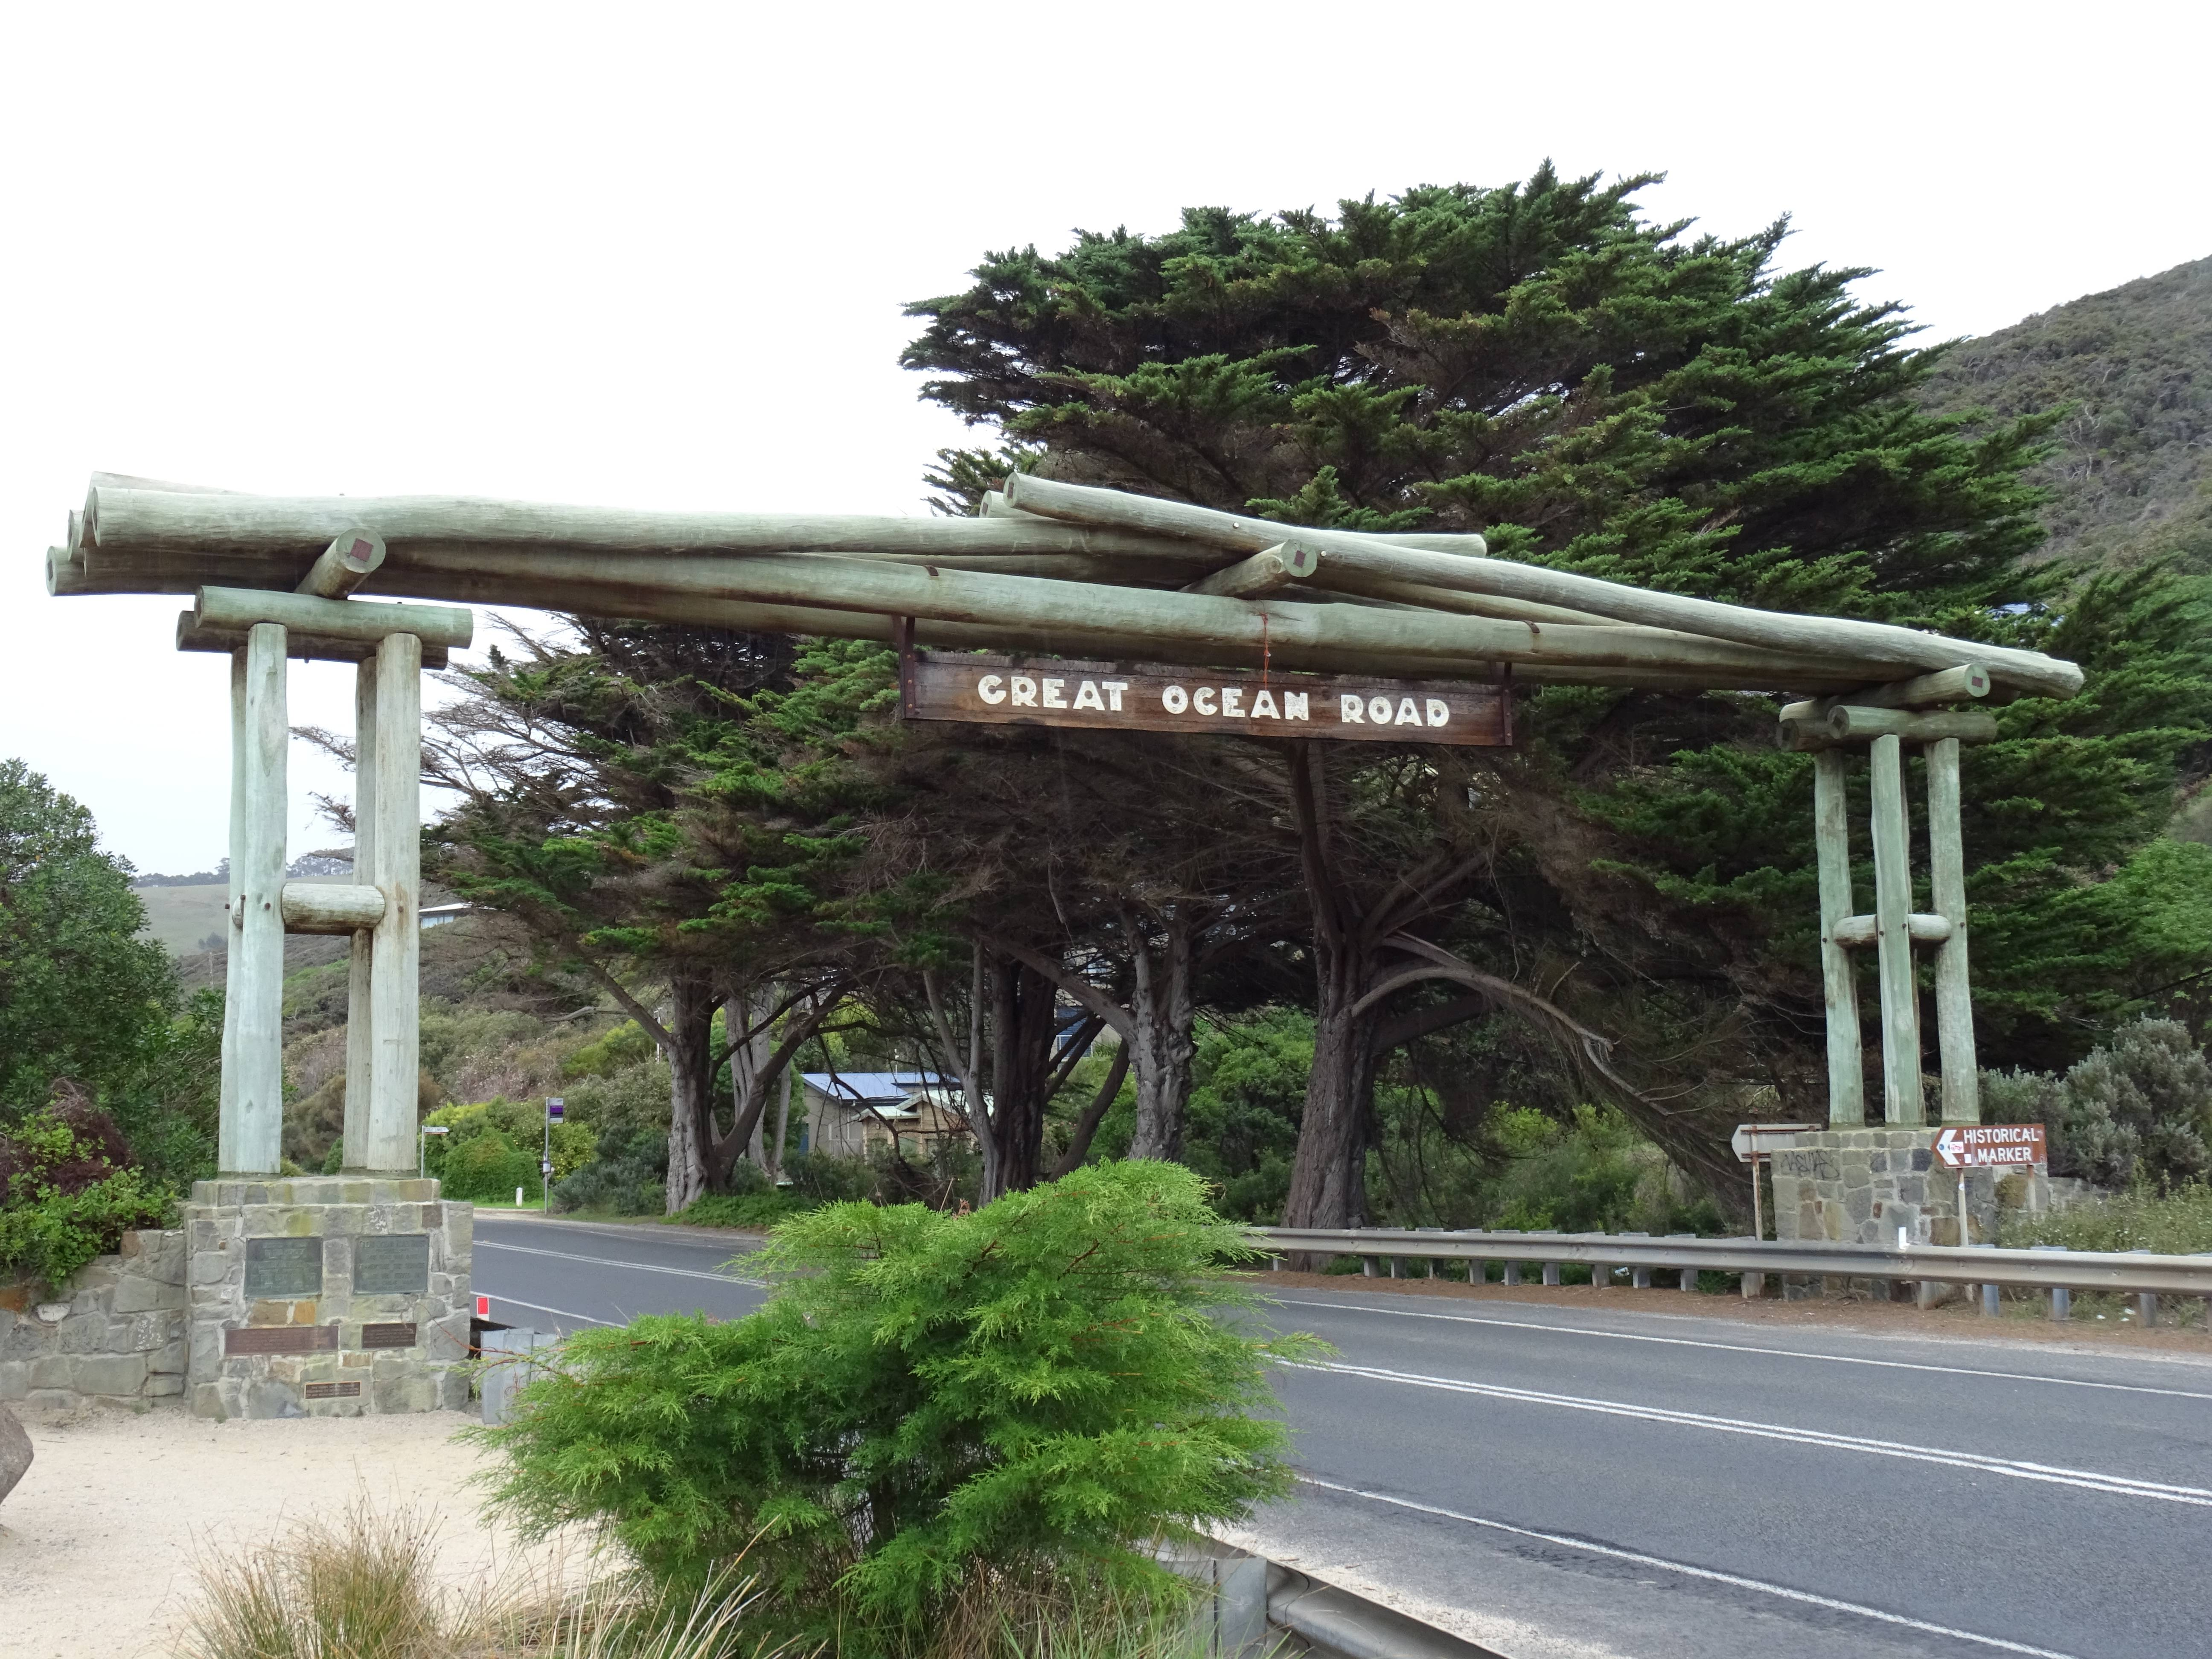 Photo 1: The Great Ocean Road!